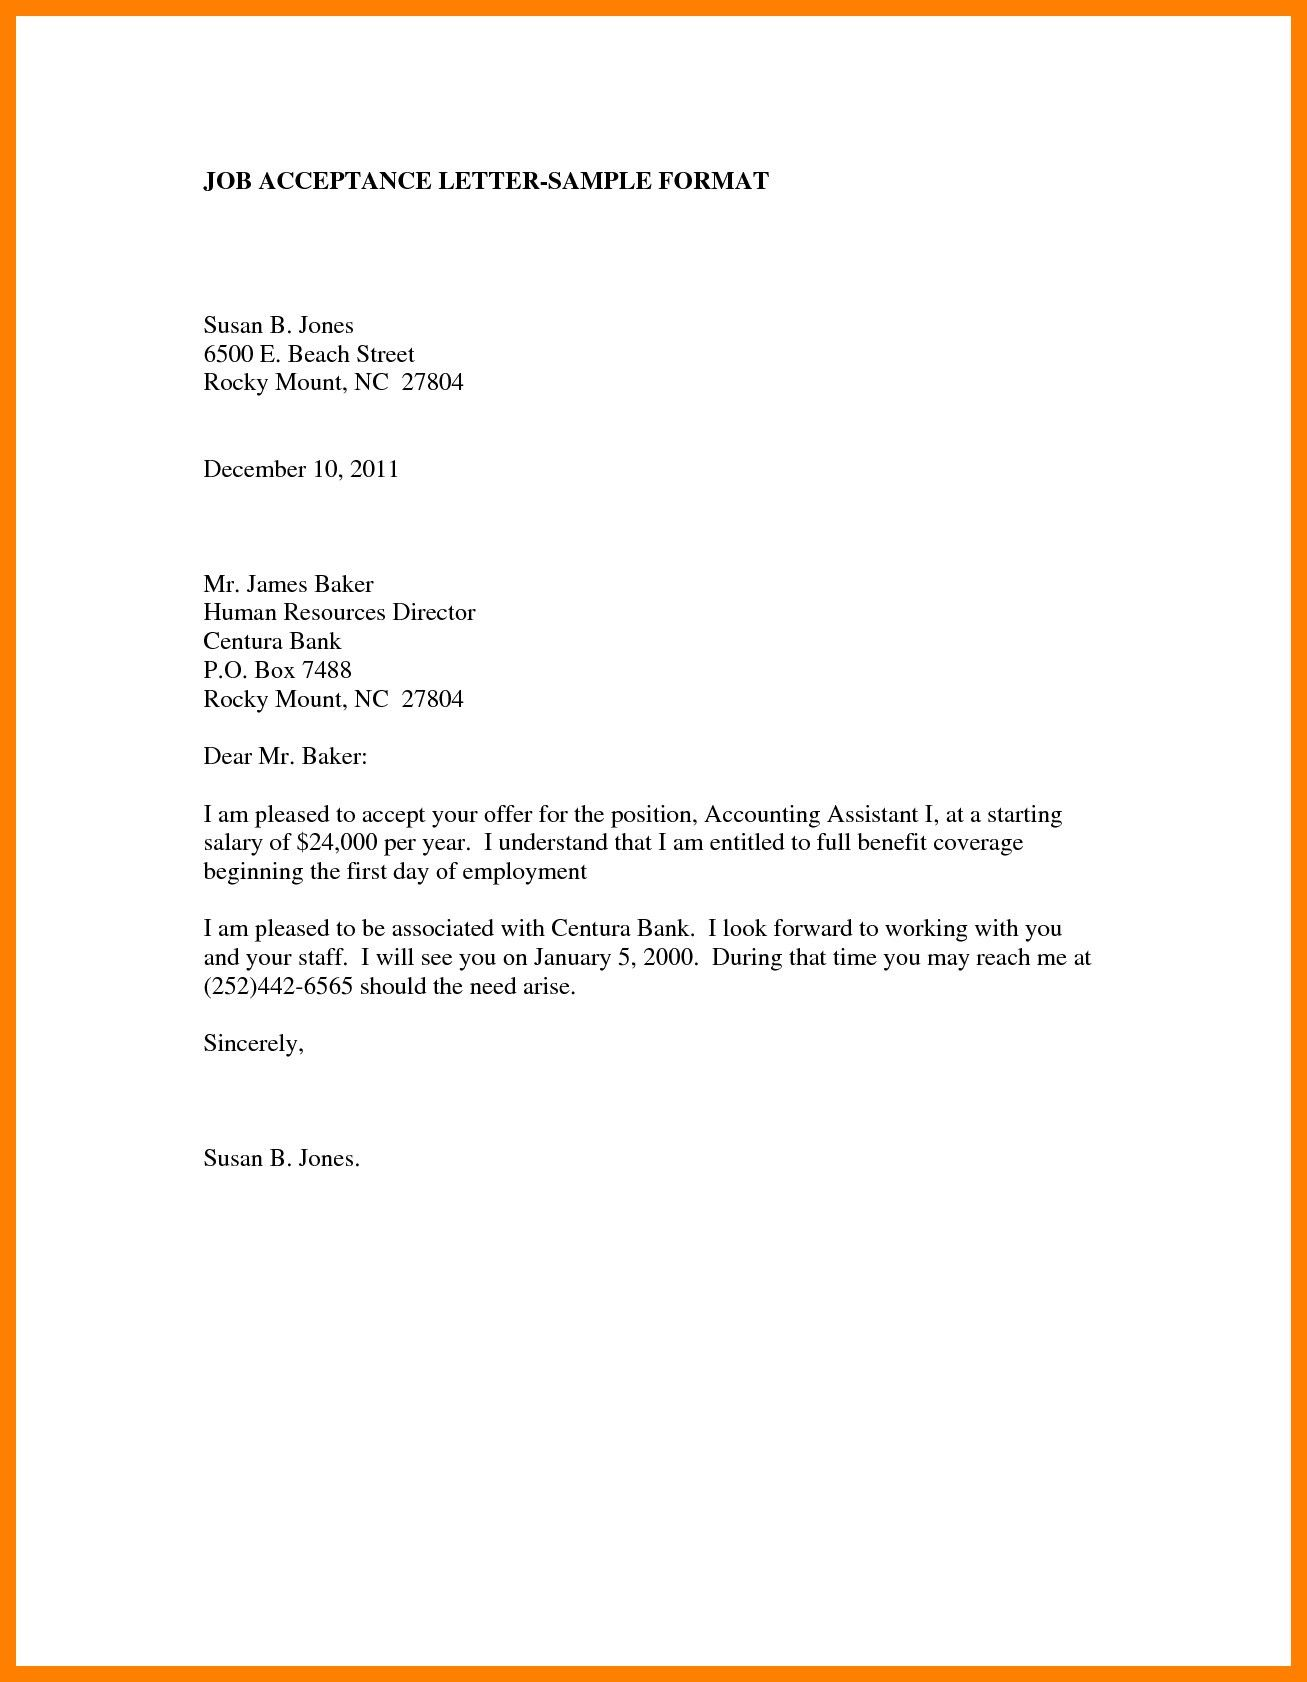 Job Offer Acceptance Letter Reply Sq0d Offer And Acceptance Acceptance Letter Writing Jobs